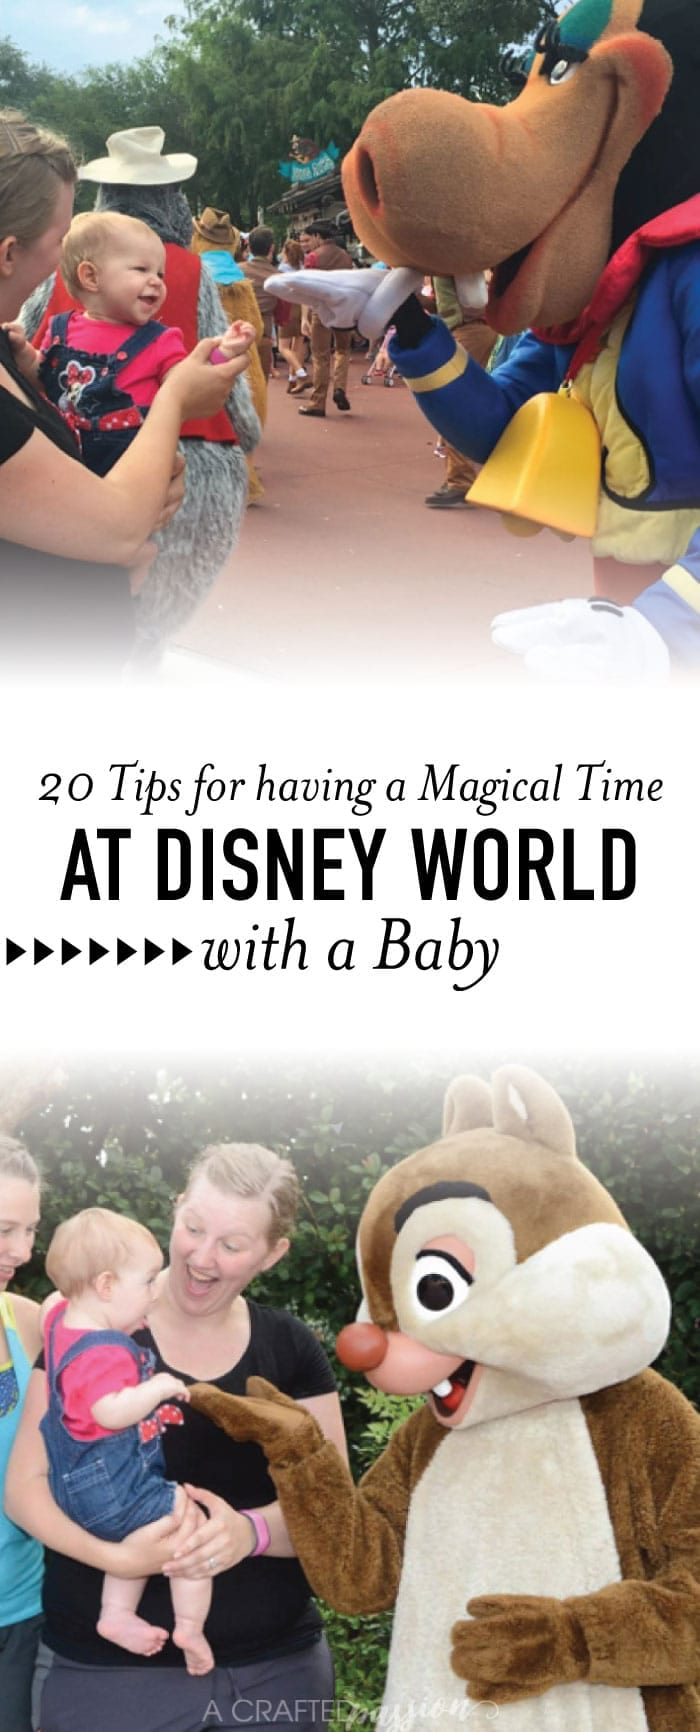 Here's all the best tips and tricks for having a magical experience at Disney World with a baby. #disneyworld #traveltips #vacation